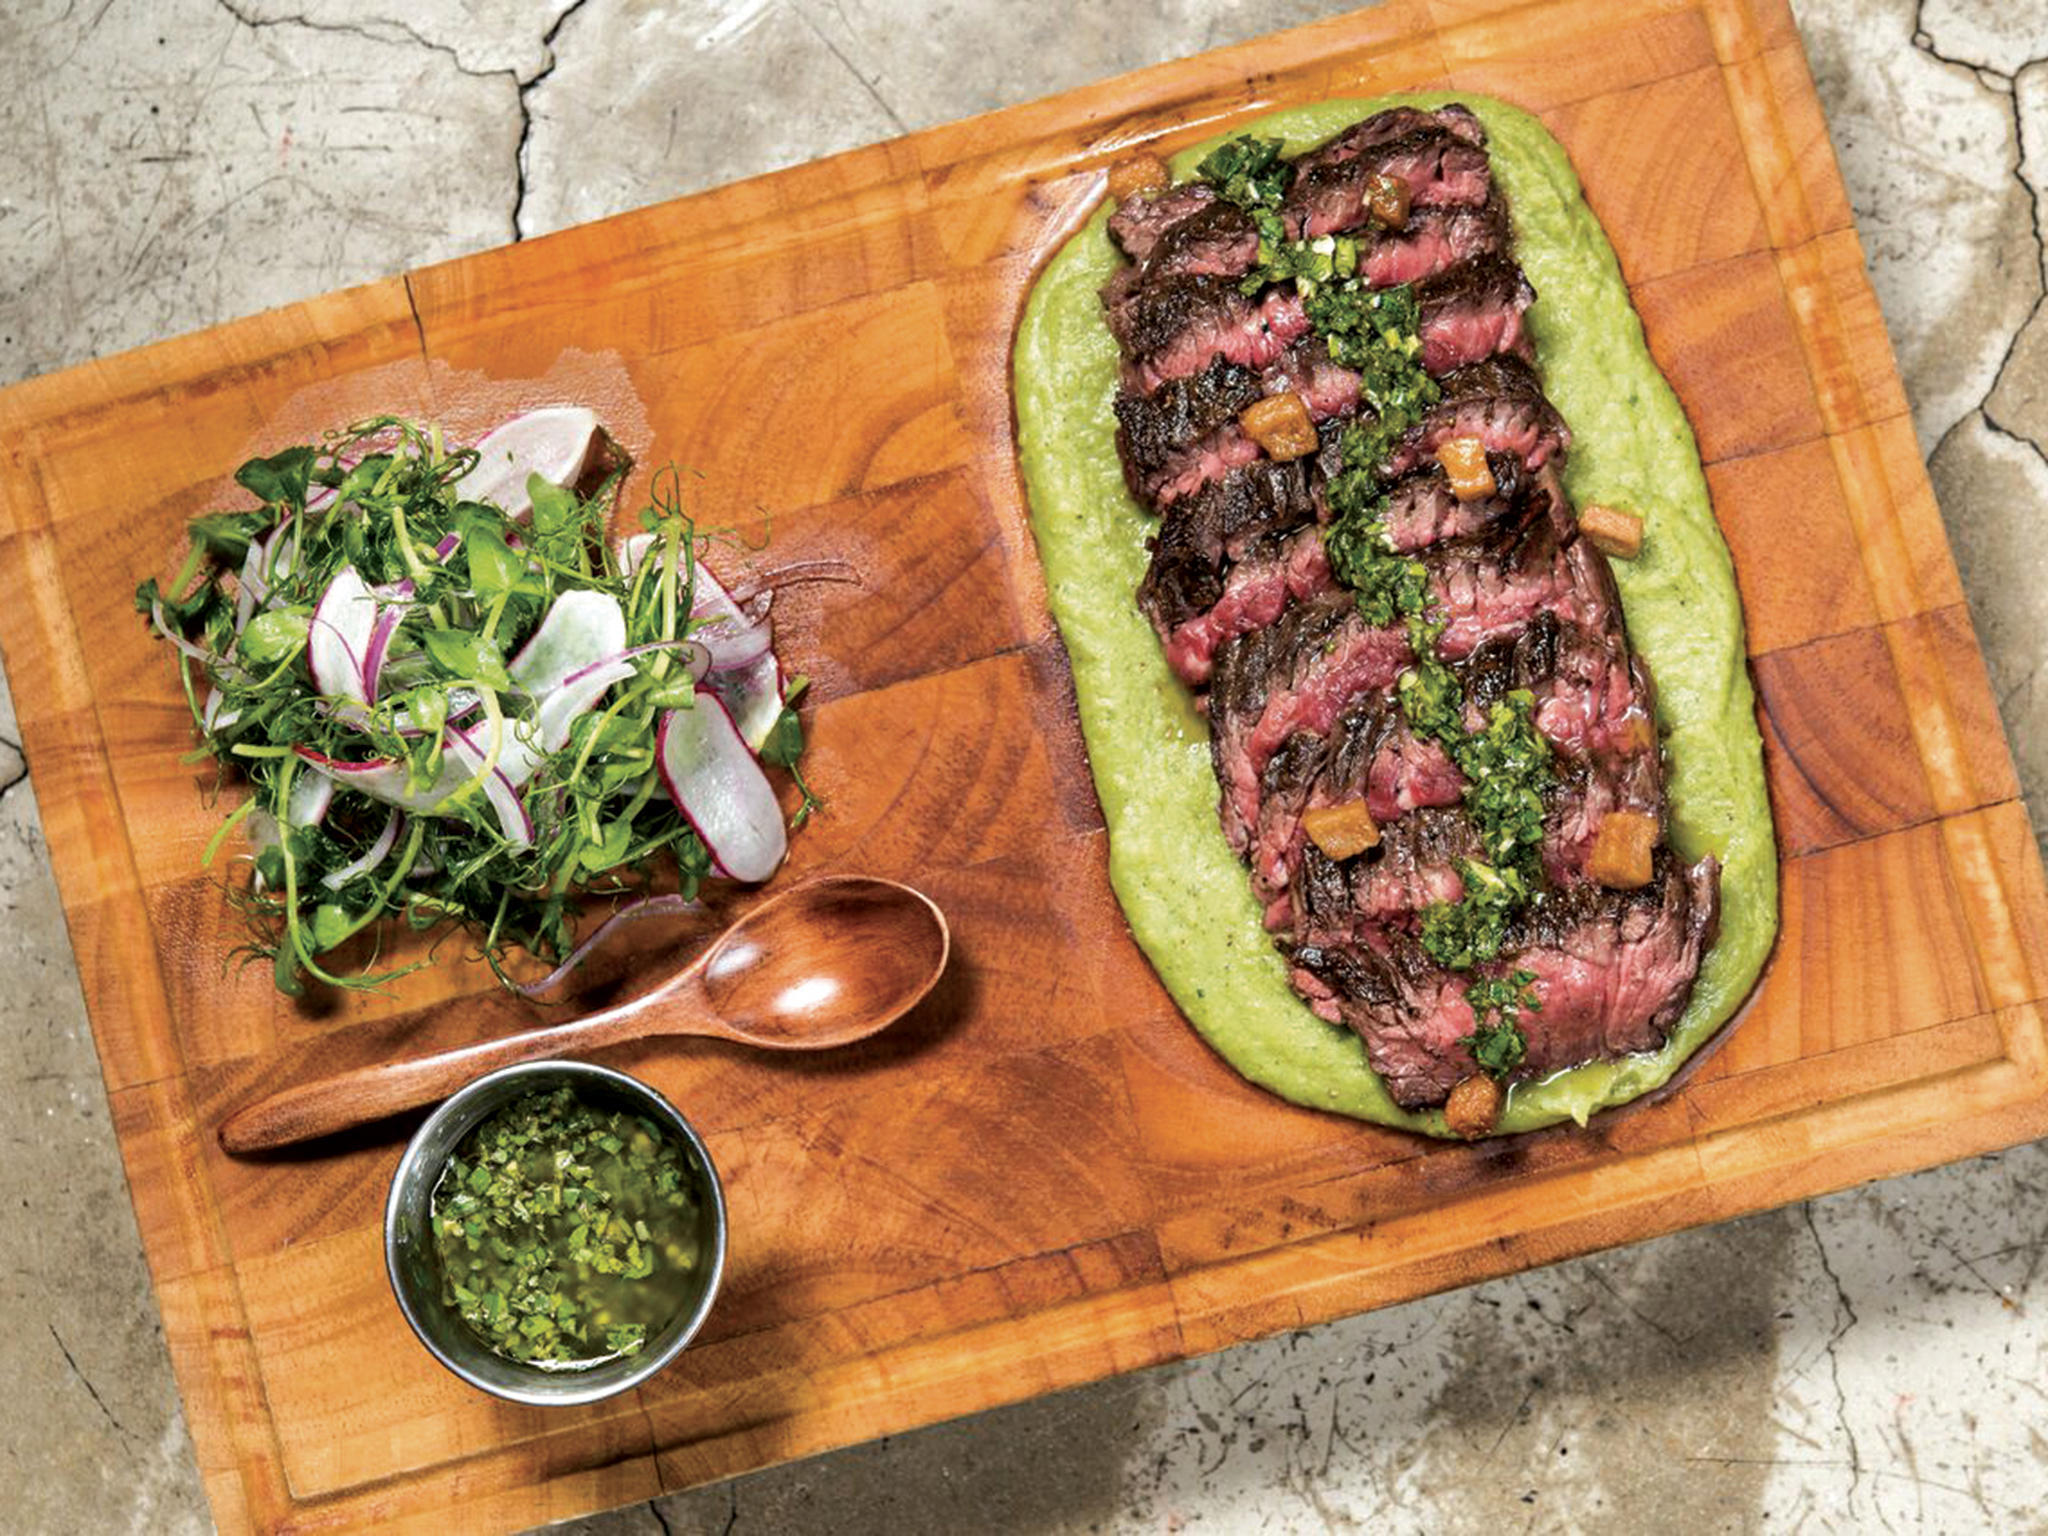 Lily & Bloom: Hickory smoked wild Hereford skirt steak